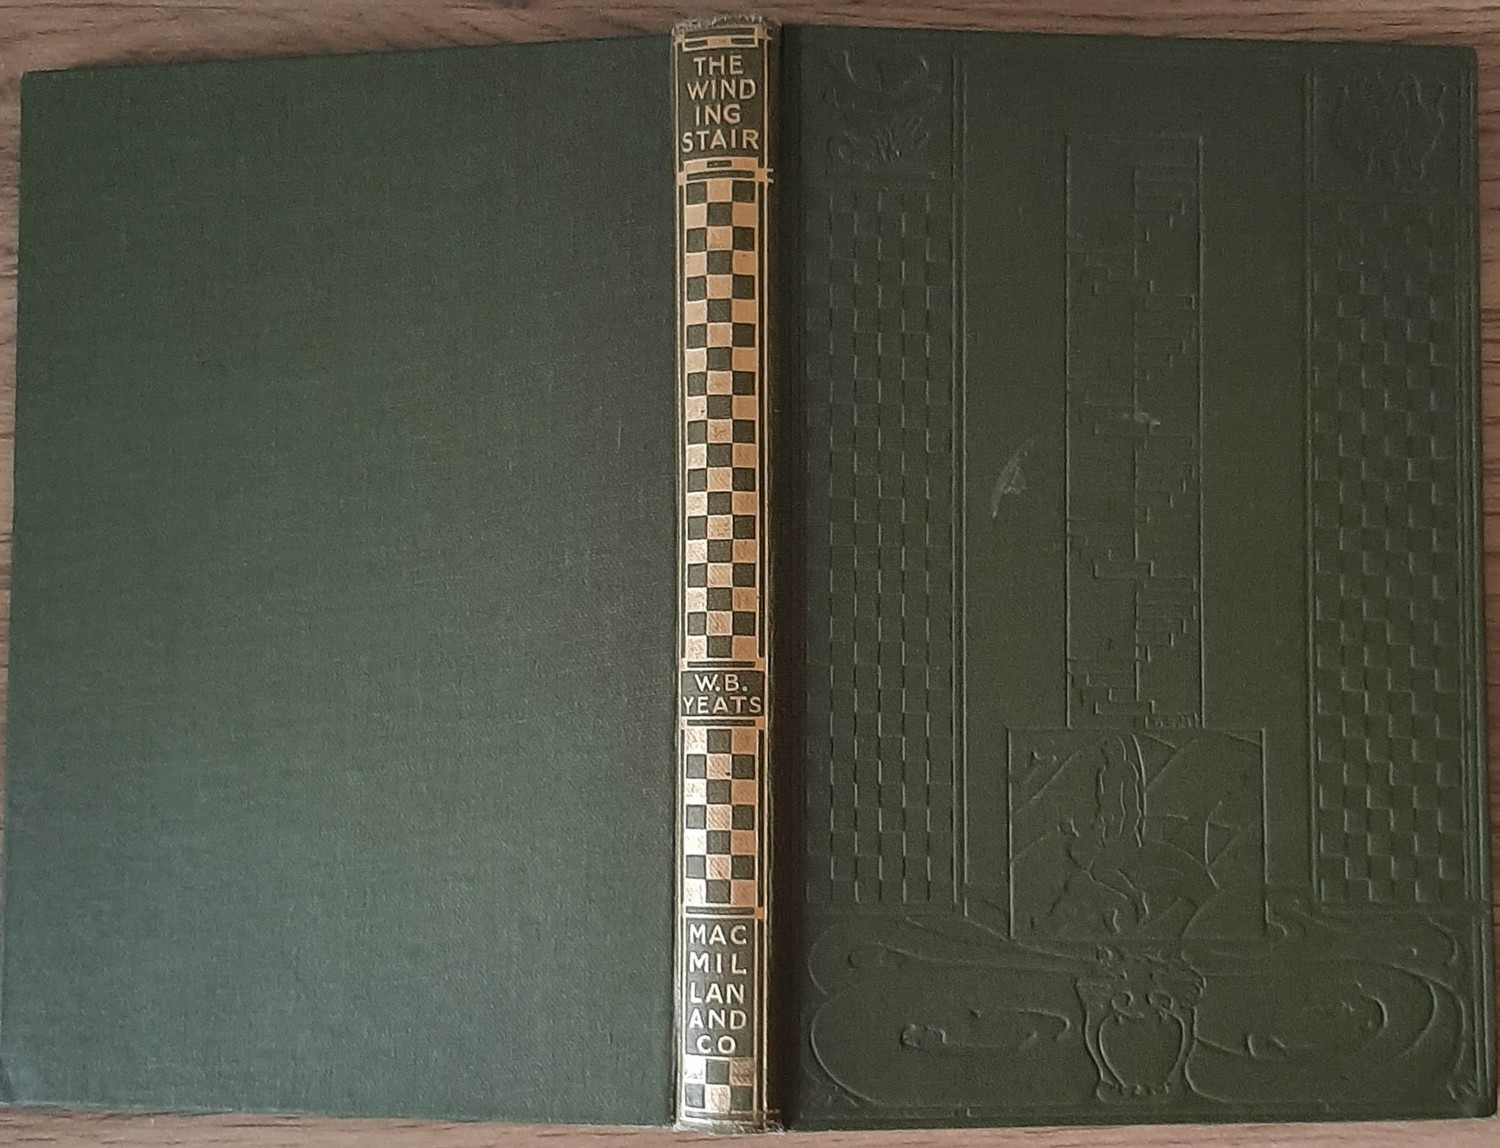 W.B. Yeats – The Winding Stairs and Other Poems (1933, 1st ed, 2nd impression). Intricate blind-